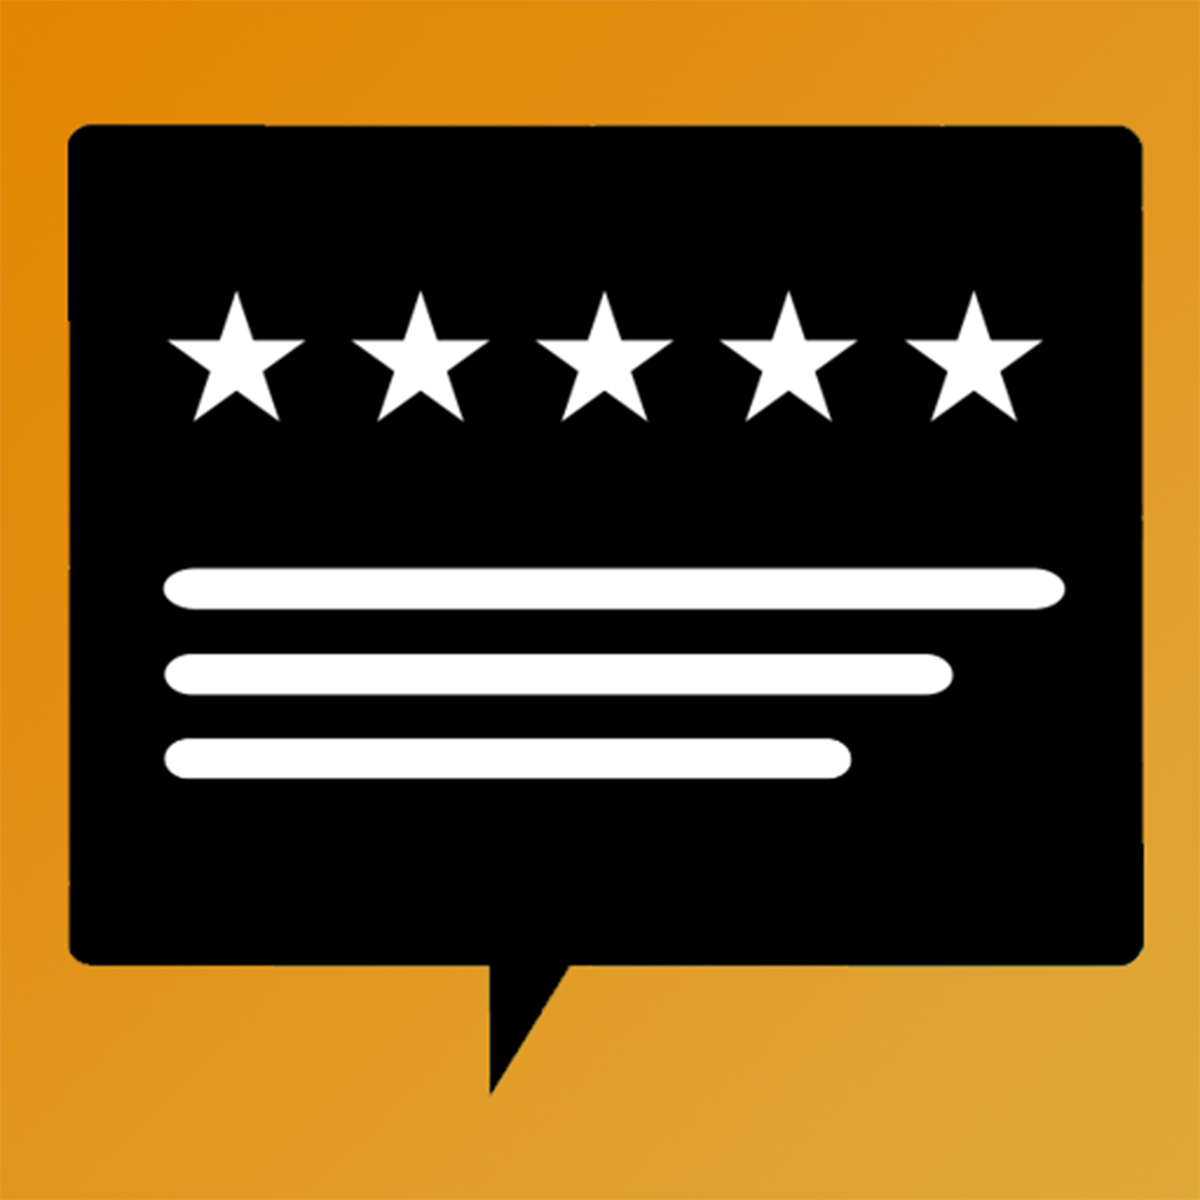 Shopify Testimonials Apps by Lj apps